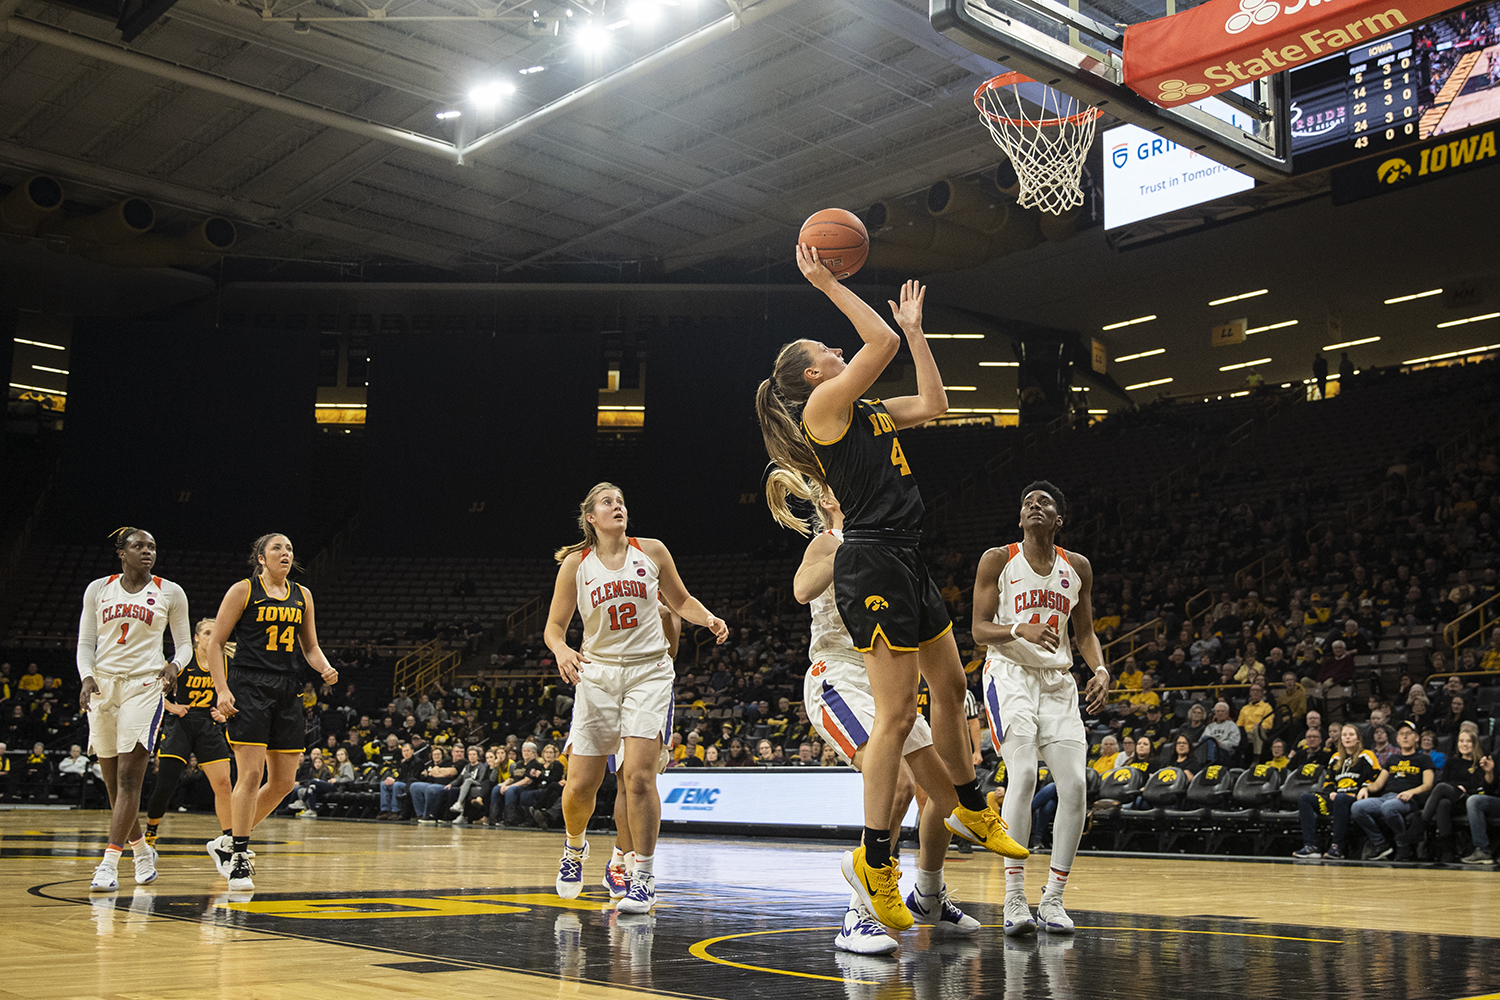 Iowa forward Amanda Ollinger goes to the rim during a womenÕs basketball match between Iowa and Clemson at Carver-Hawkeye Arena on Wednesday, Dec. 4, 2019. The Hawkeyes defeated the Tigers, 74-60. (Shivansh Ahuja/The Daily Iowan)